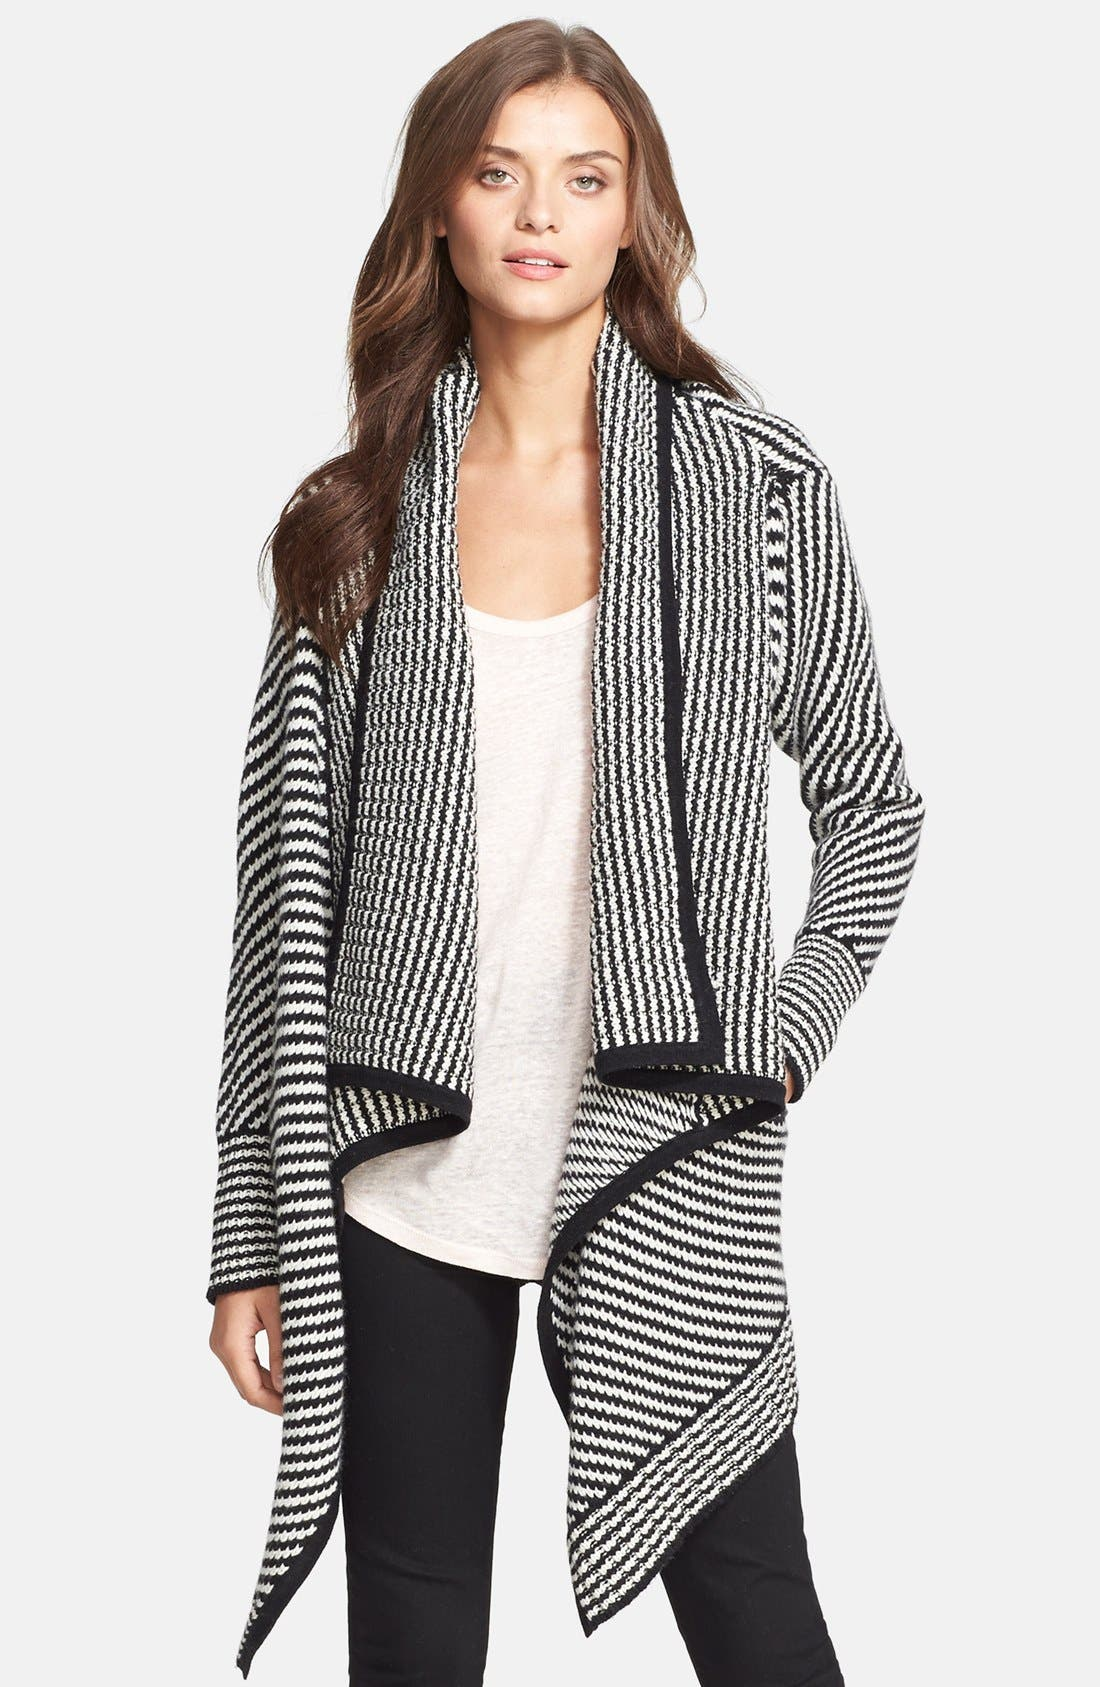 JOIE 'Mathisa' Open Front Wool & Cashmere Cardigan, Main, color, 004